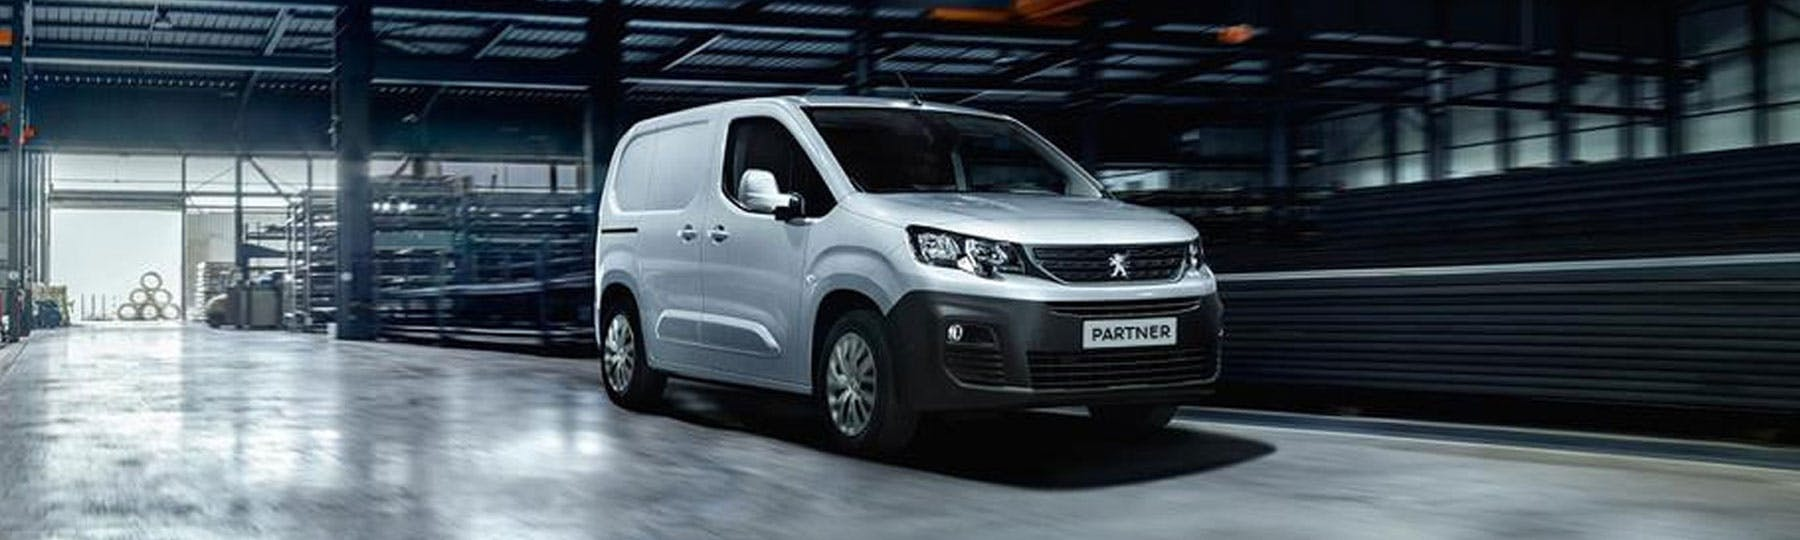 Peugeot Partner Professional Offer